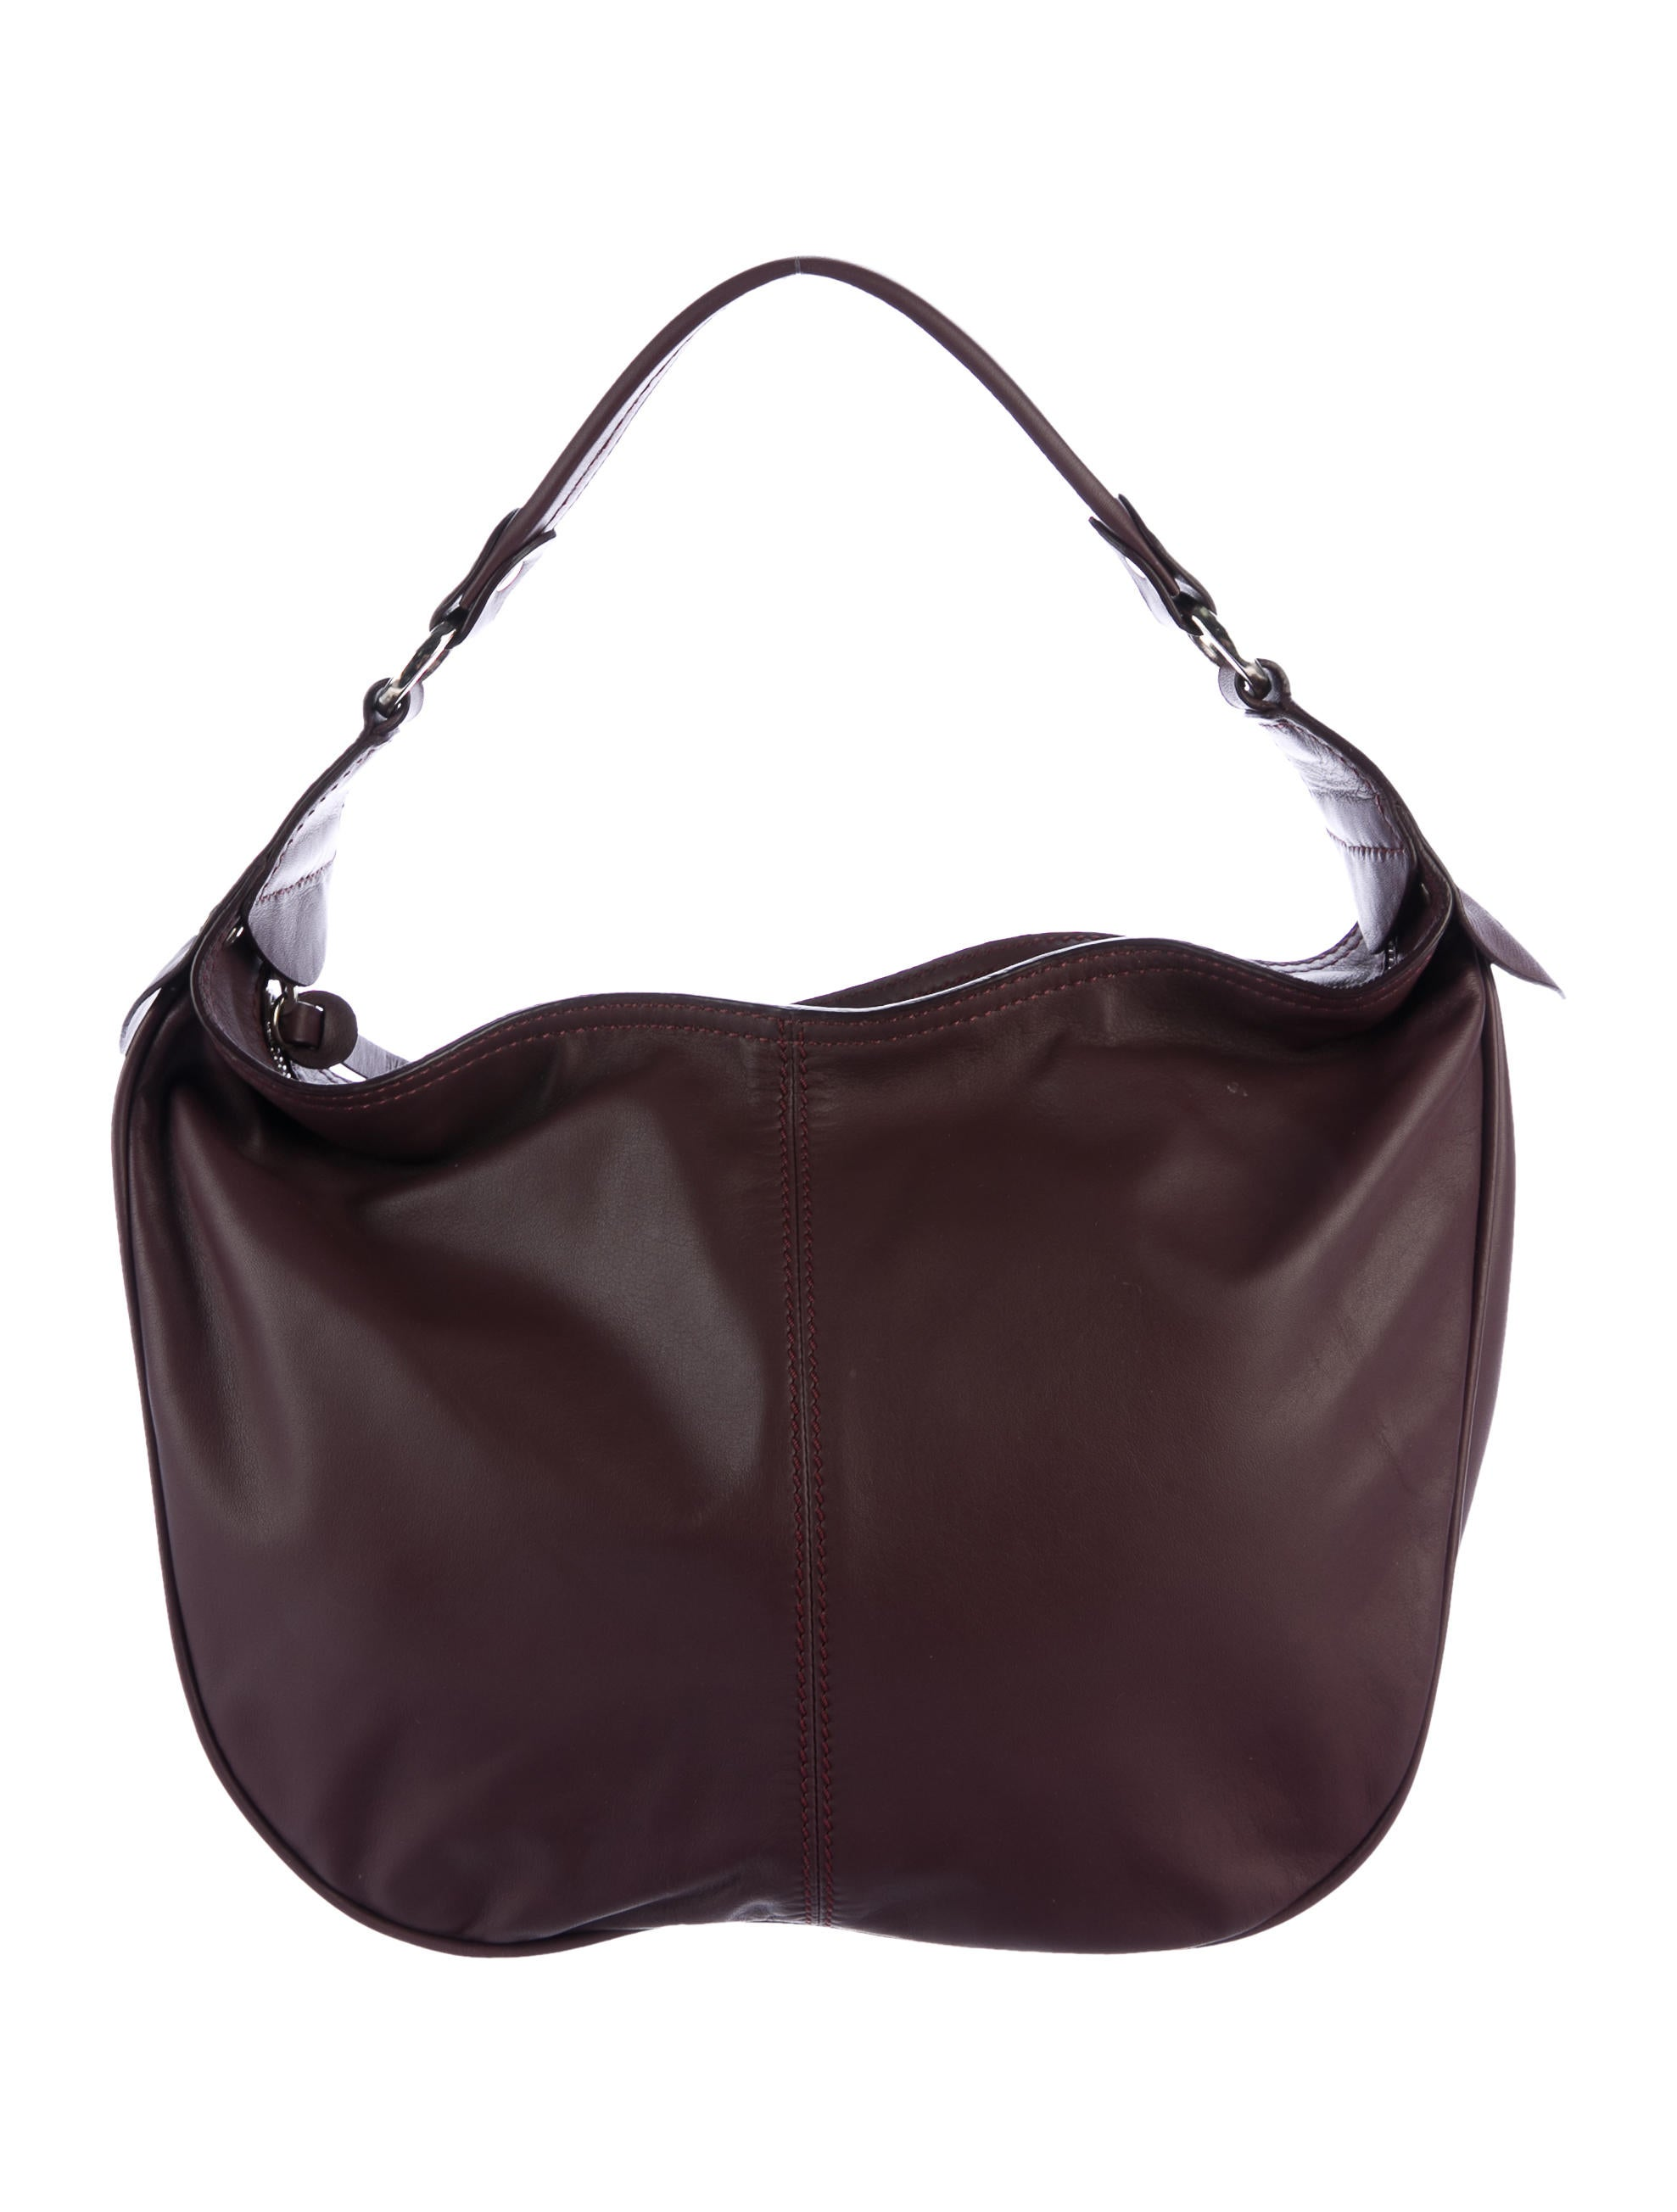 07bb718490a5 Hogan Walnut Leather Handle Bag - Handbags - WHO20416